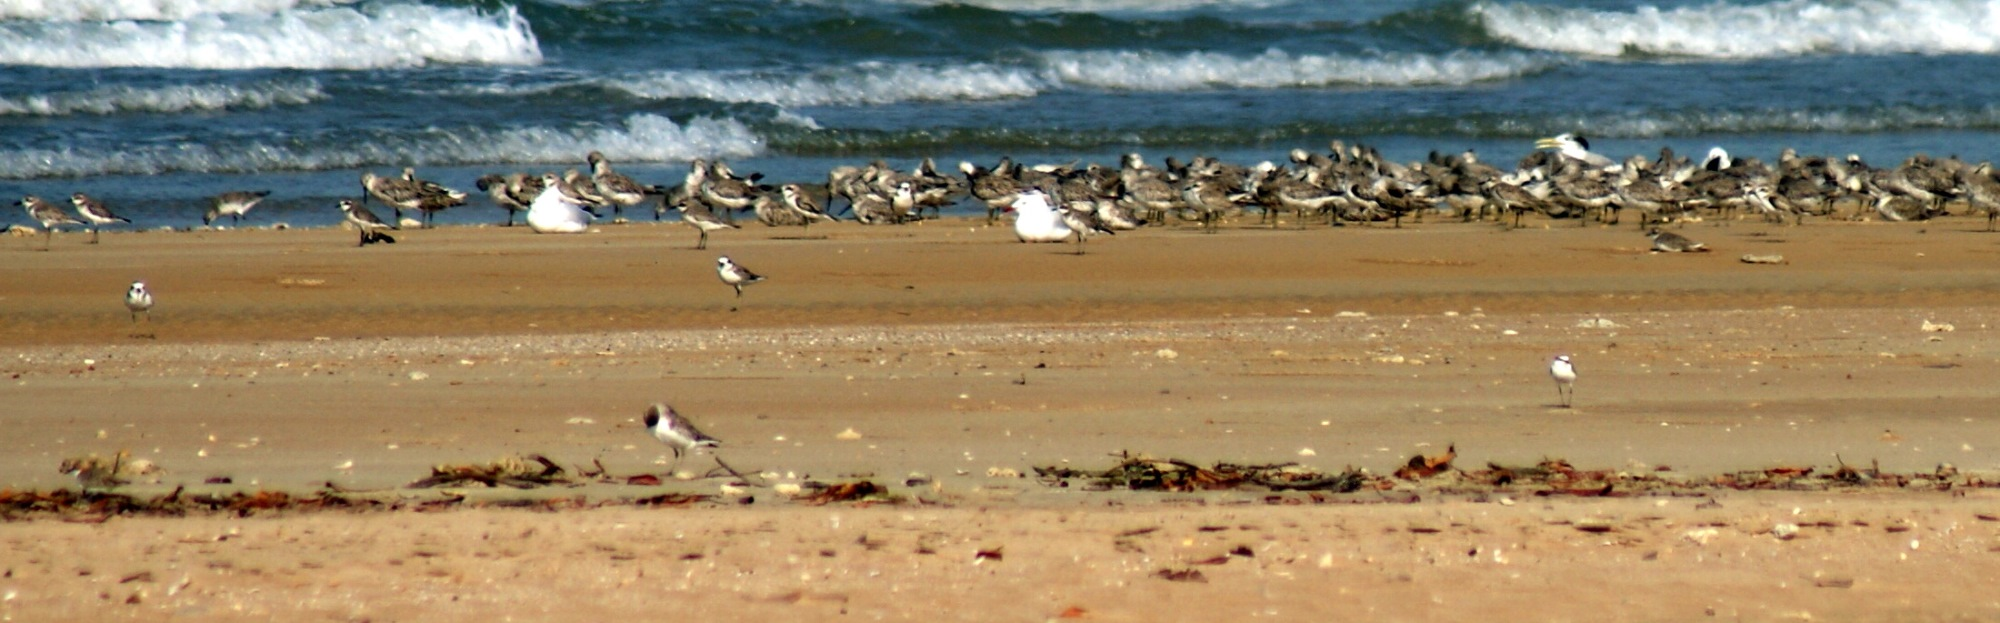 When the tide is right Lee Point hundreds of birds can be seen roosting at Lee Point